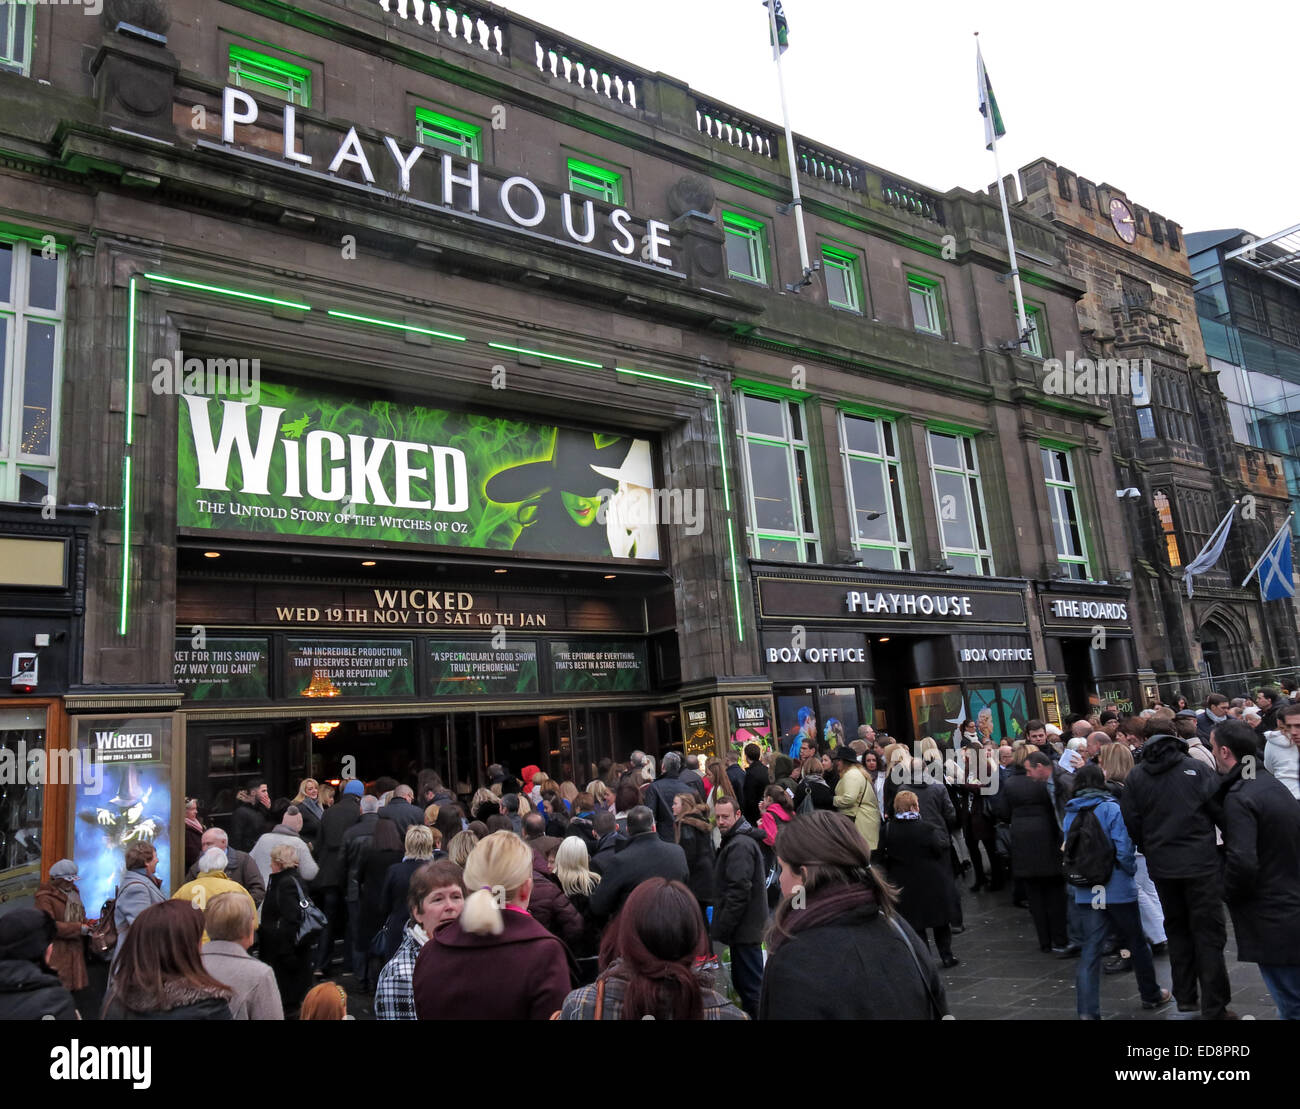 Arts,movement,entertainment,building street,streets in Scotland,Scottish,winter,play,travel,traveller,tourism,tourist,the,production,of,Wicked,Scotland,UK,Actor,Actors,boards,comedy,venue,capital,city,Gotonysmith